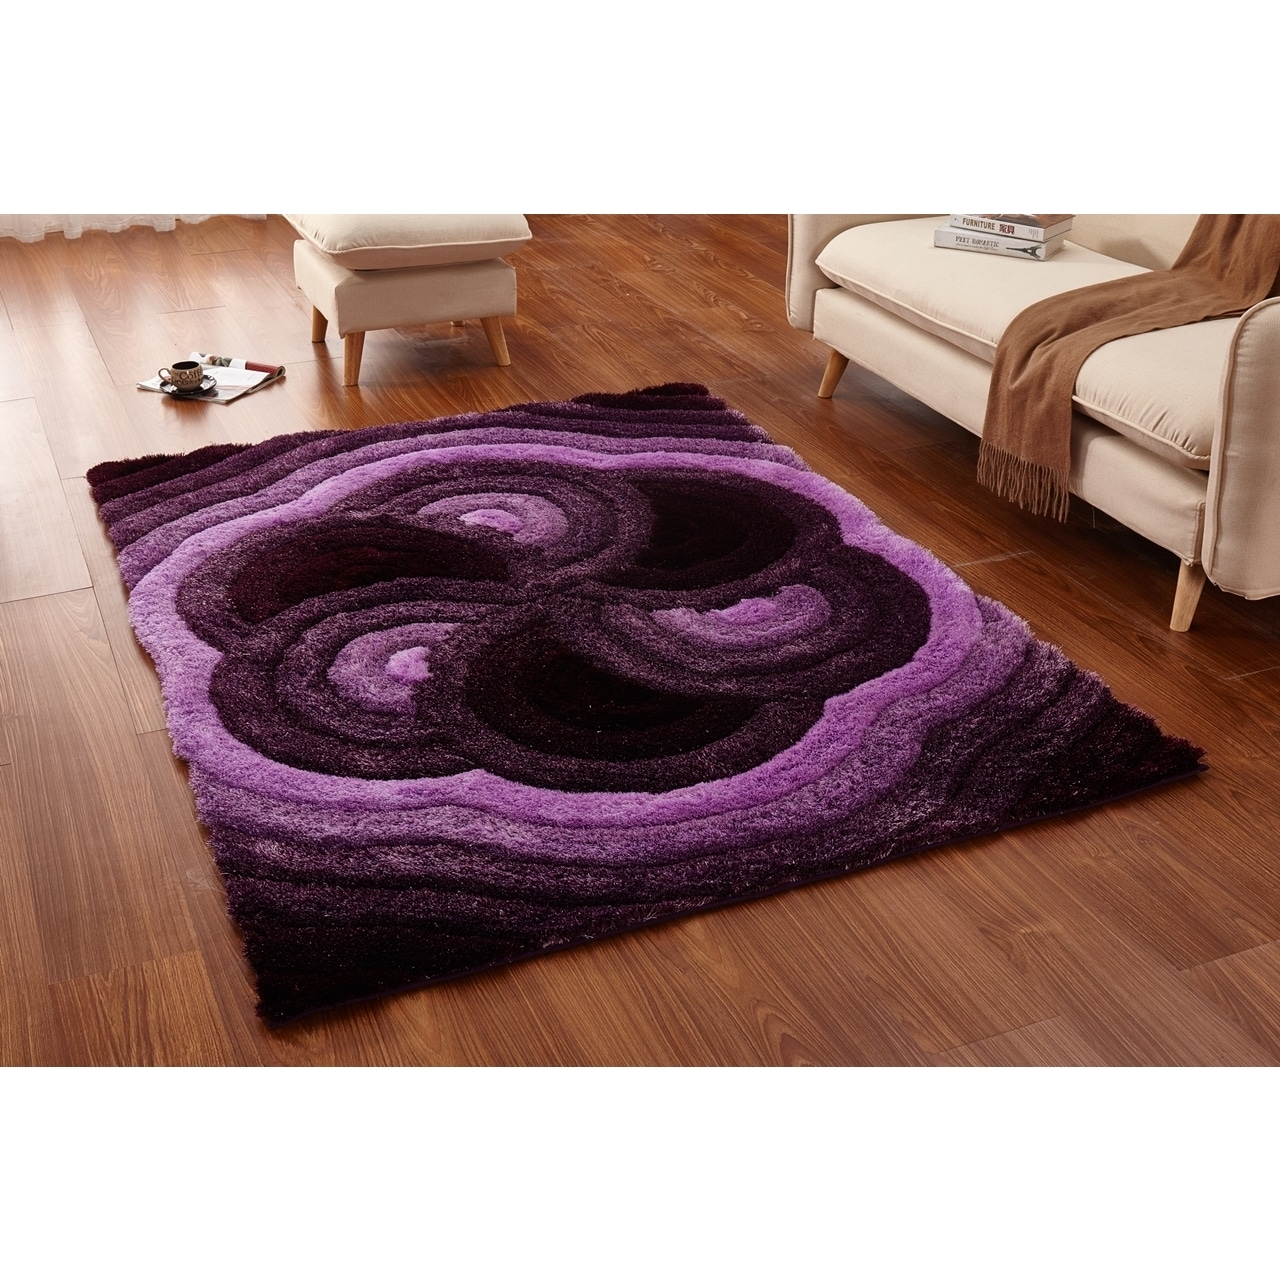 Casa Regina Soft Gy Collection Fl Spiral Design Area Rug 5 X 6 Free Shipping Today 20529114